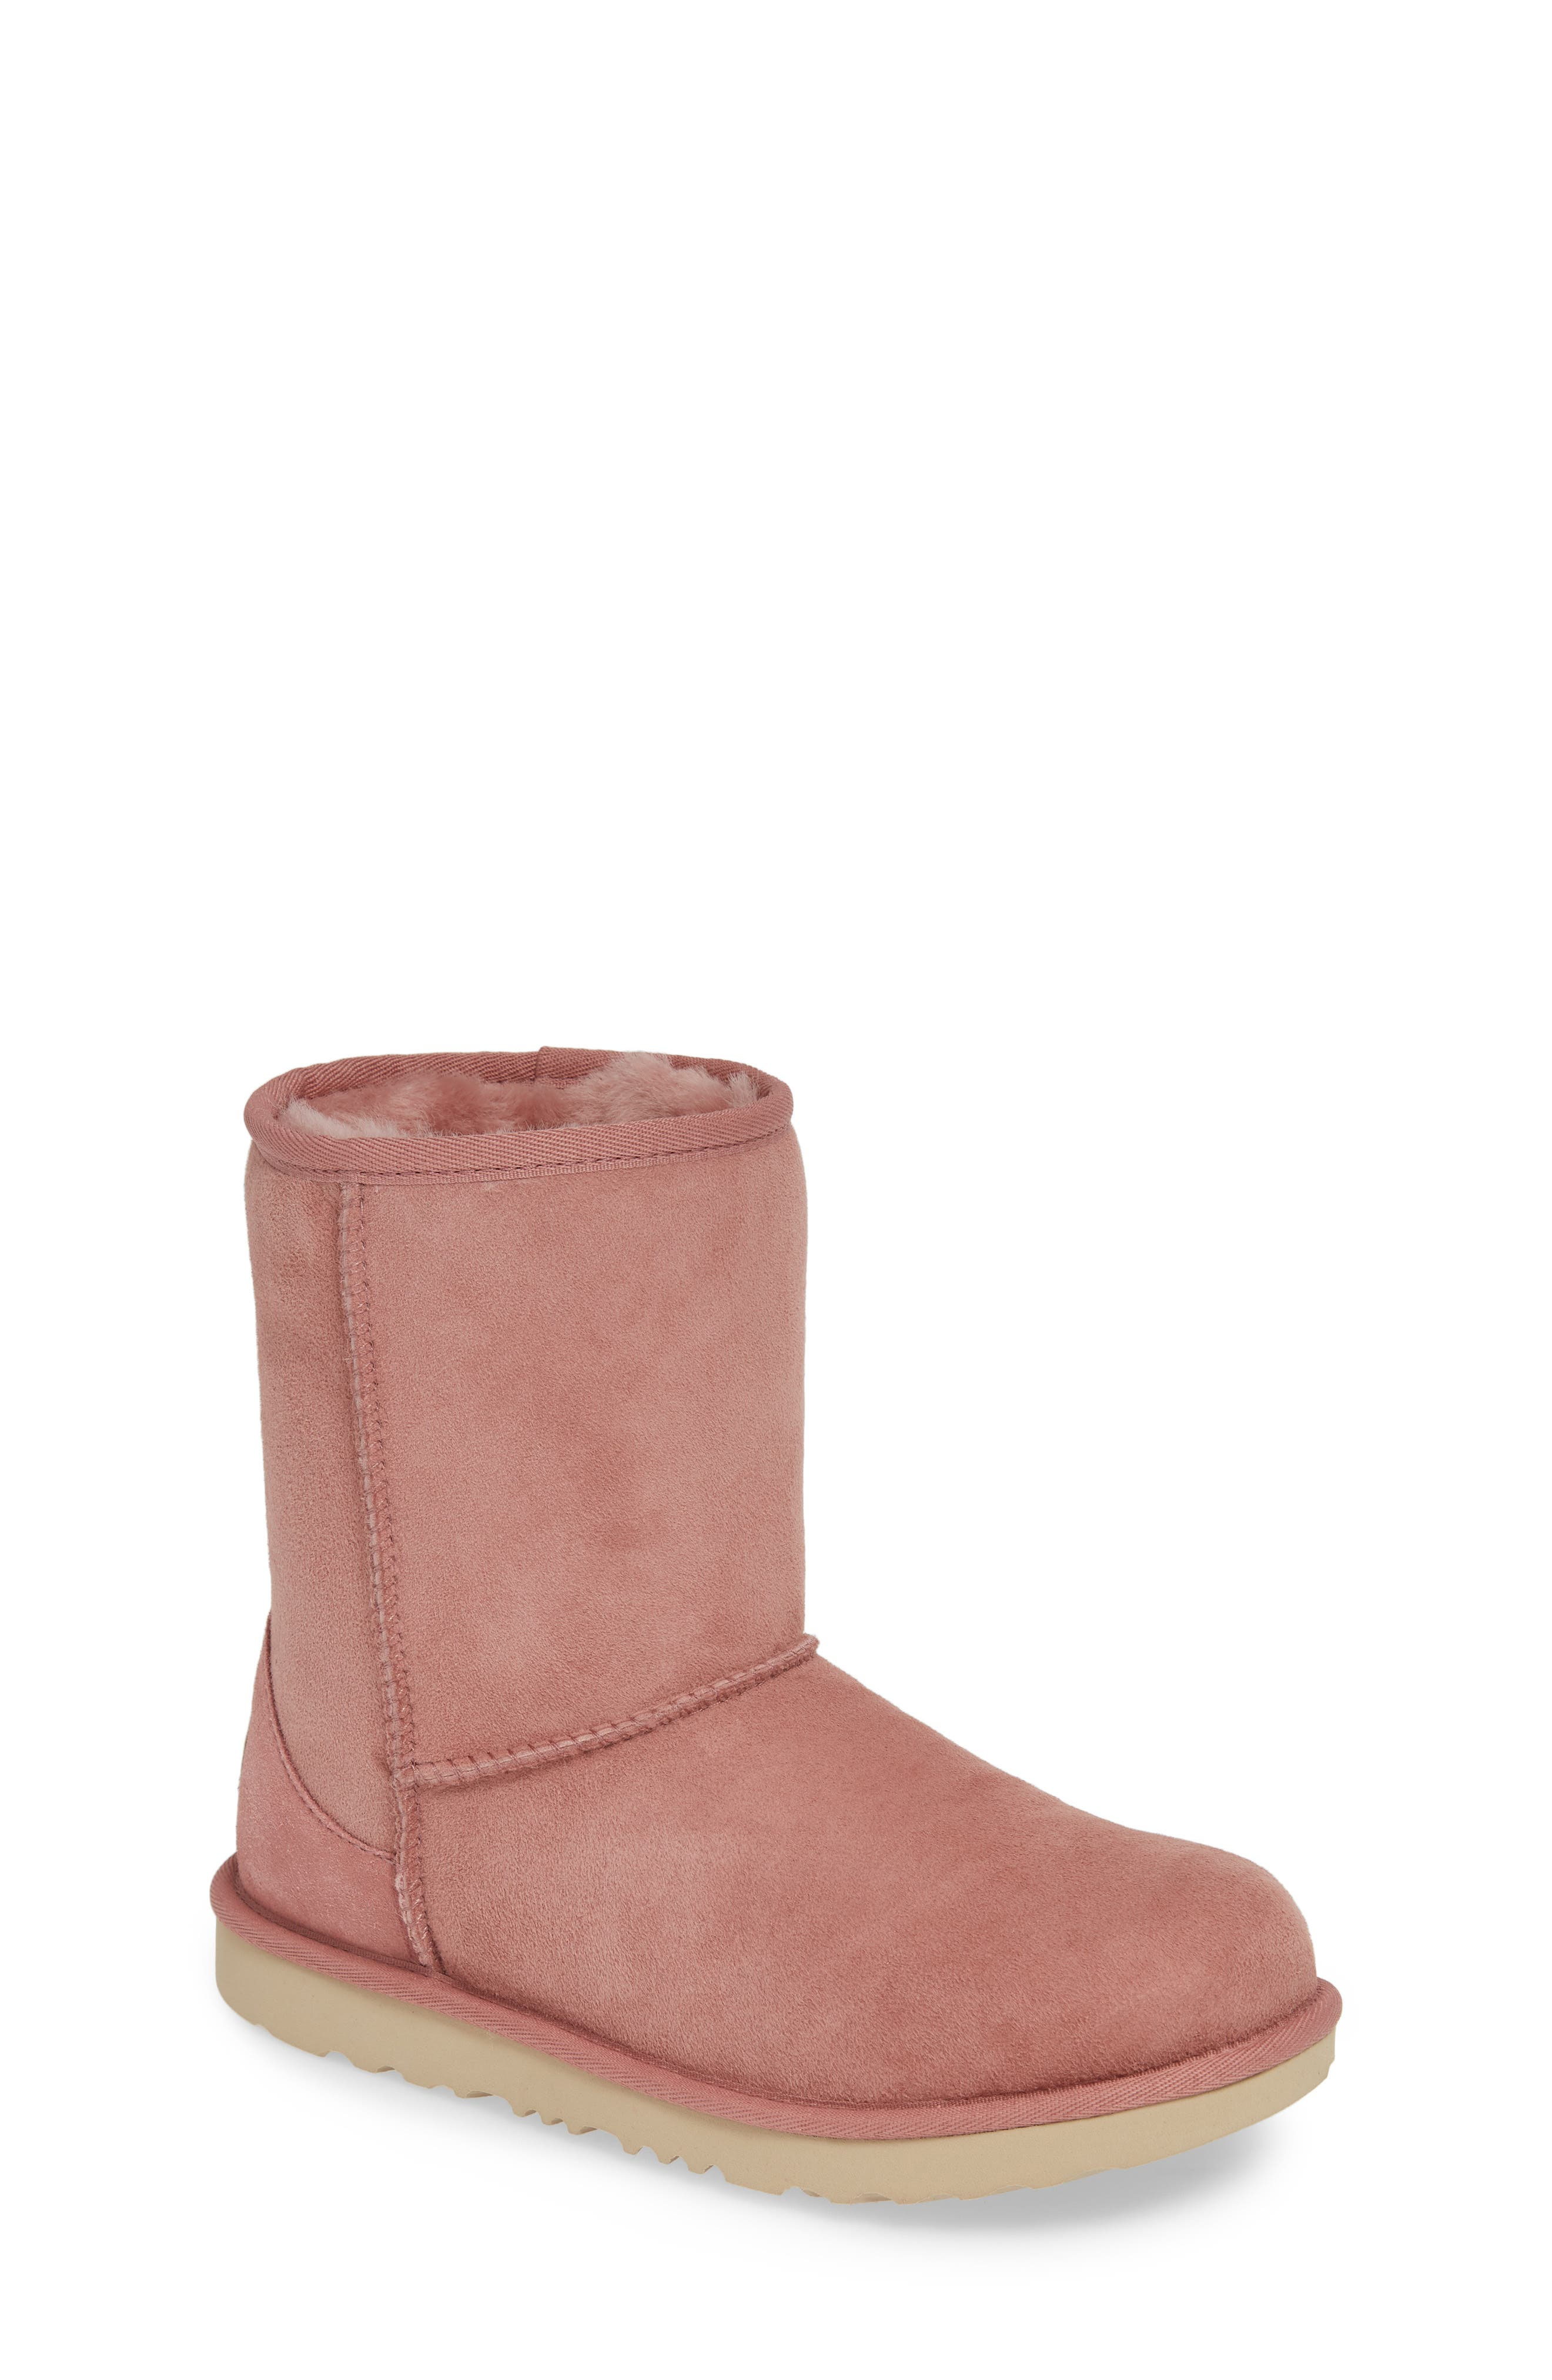 Classic Short II Water Resistant Genuine Shearling Boot,                             Main thumbnail 1, color,                             PINK DAWN